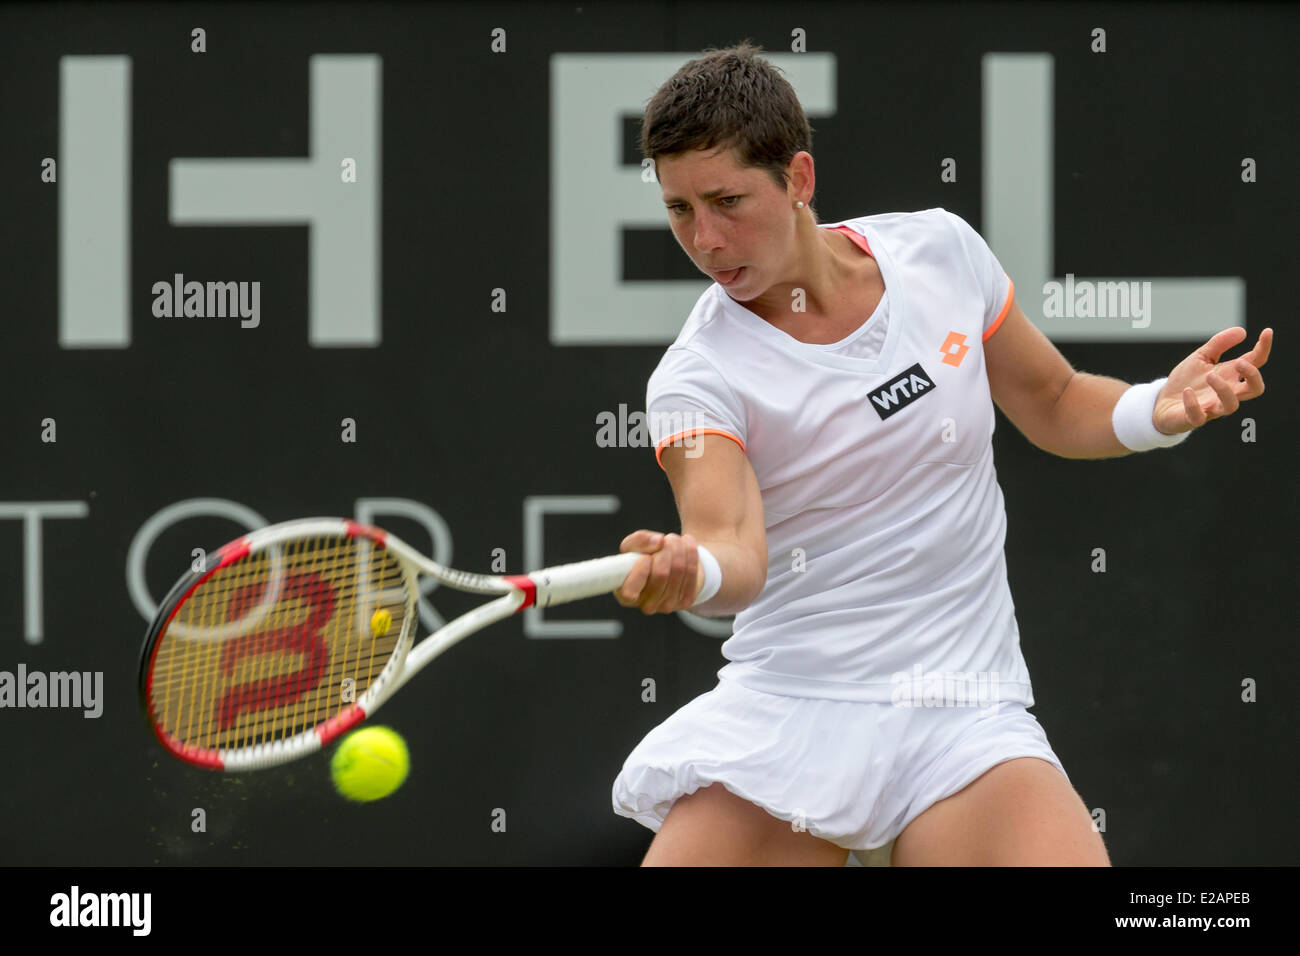 Tennis player carla suarez navarro esp hits a forehand during her 2nd round singles